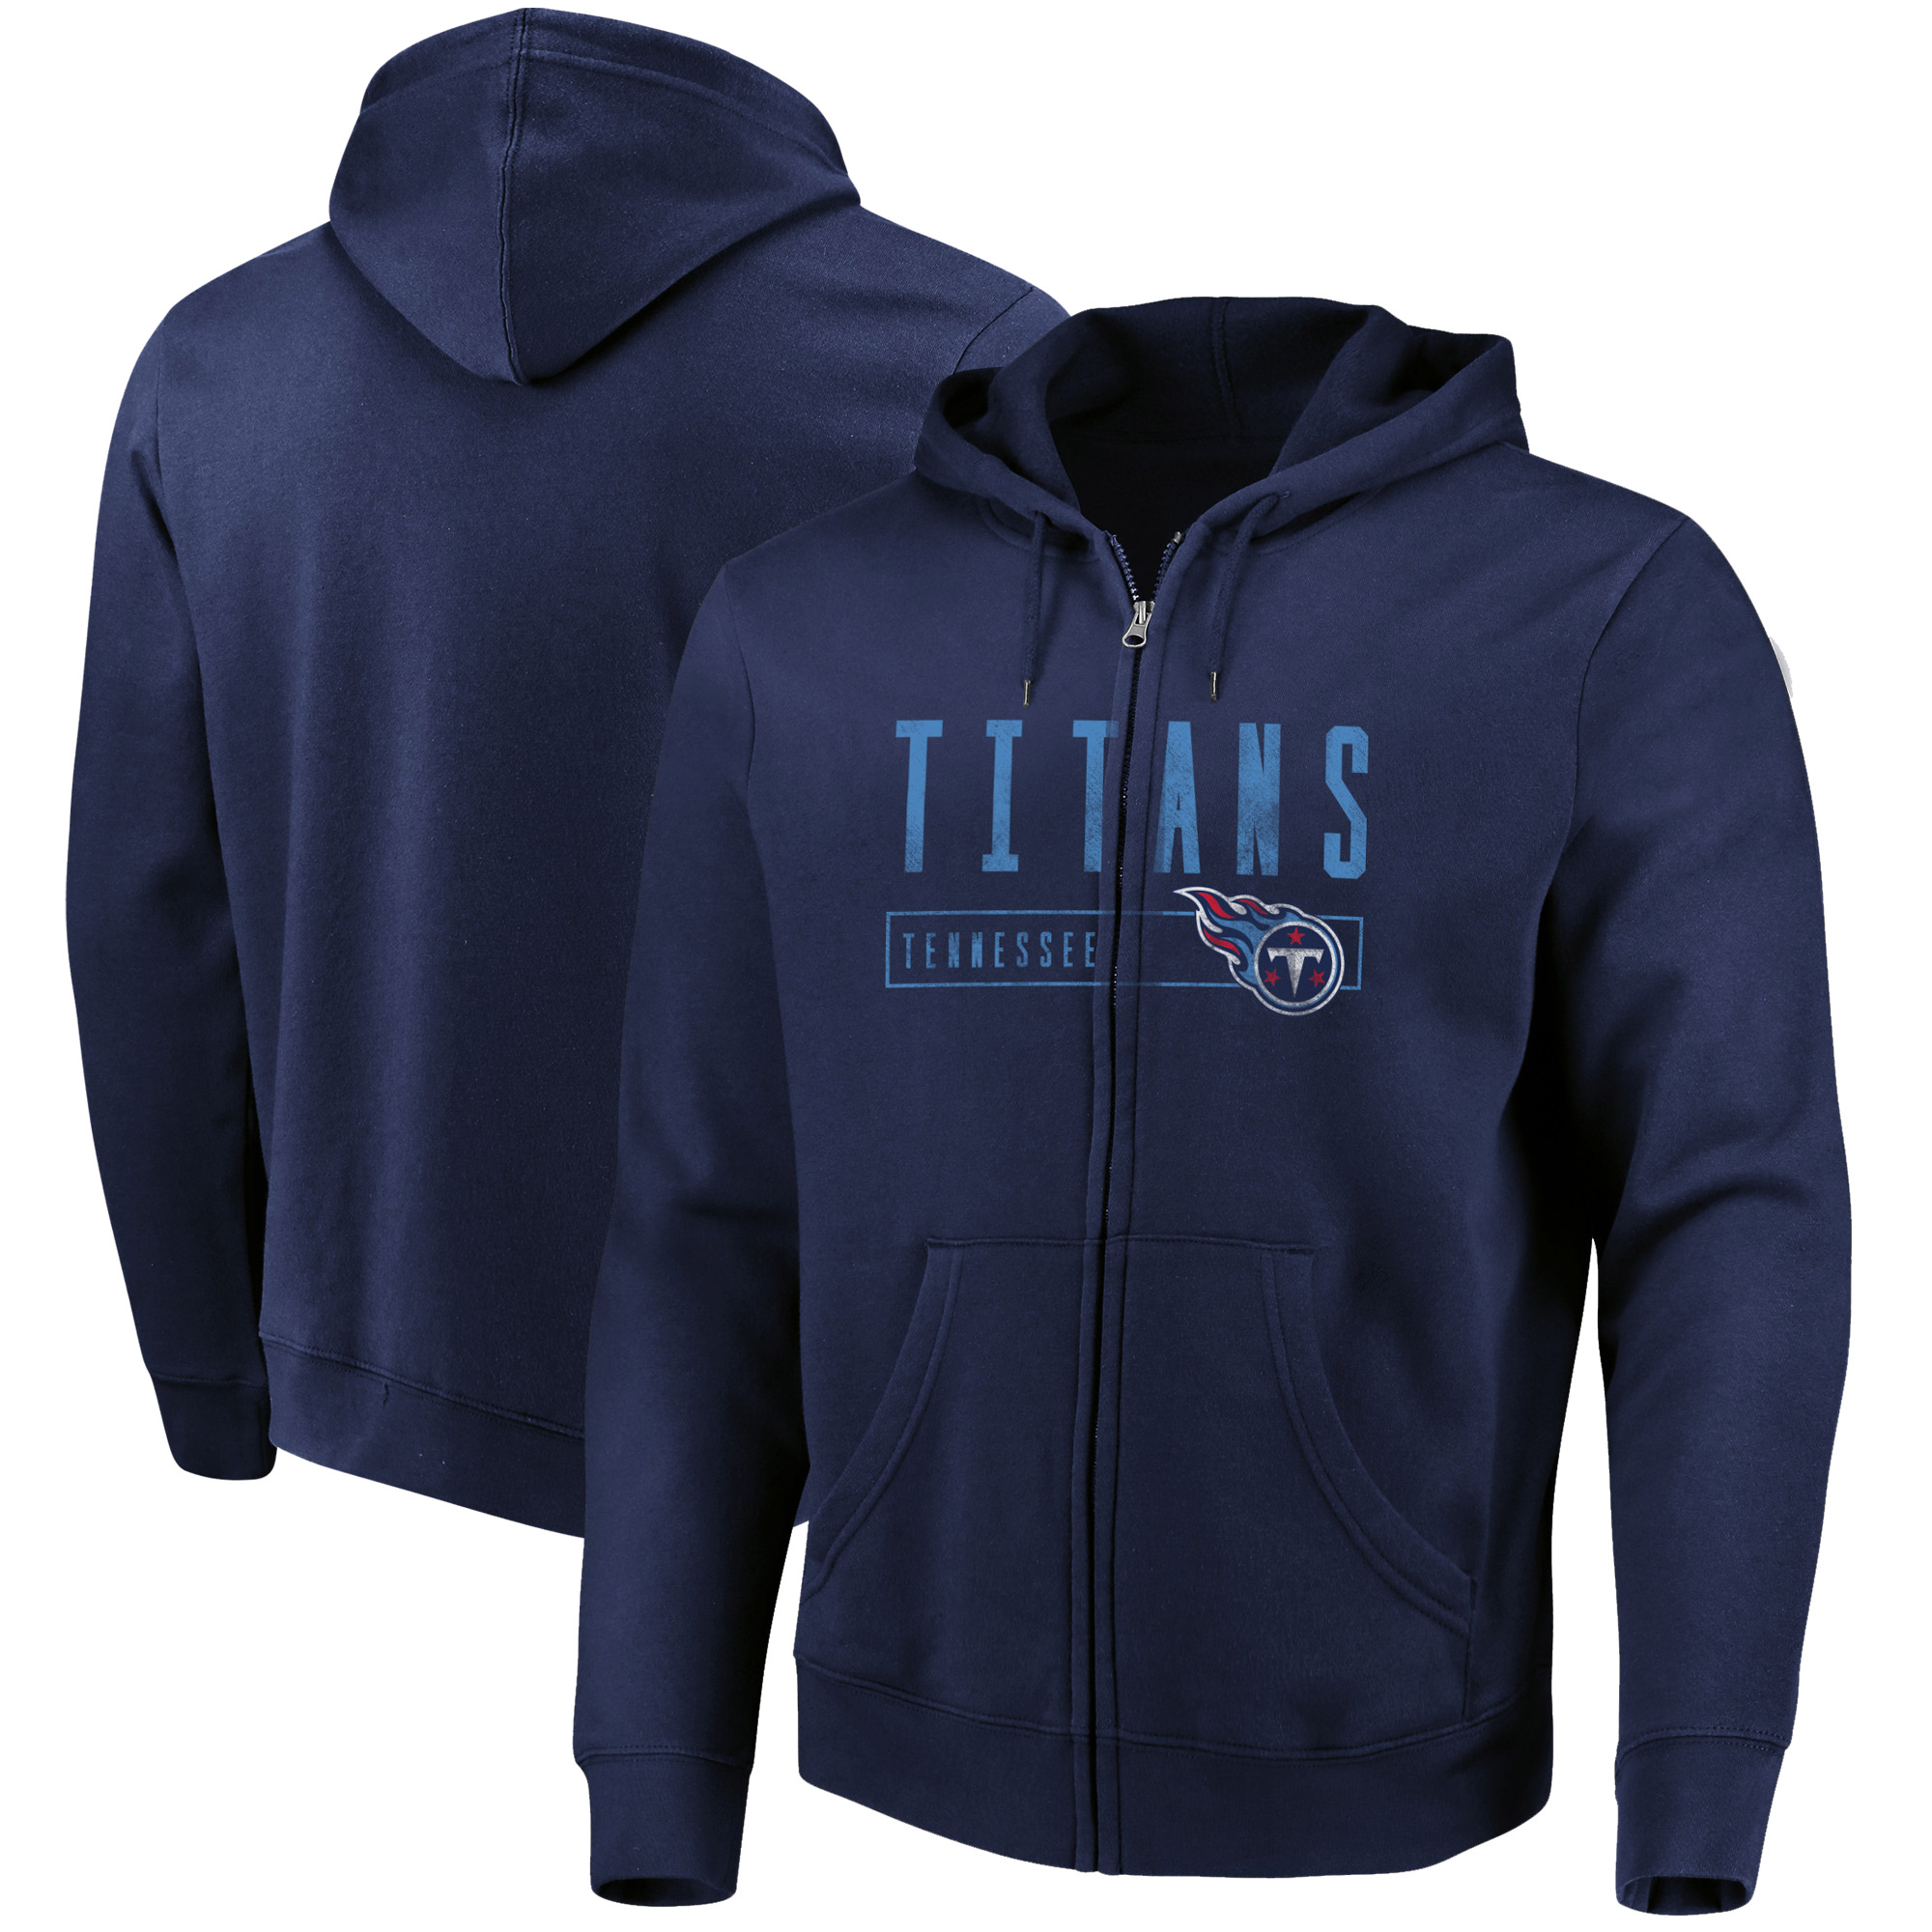 Tennessee Titans Majestic Hyper Stack Full-Zip Hoodie - Navy